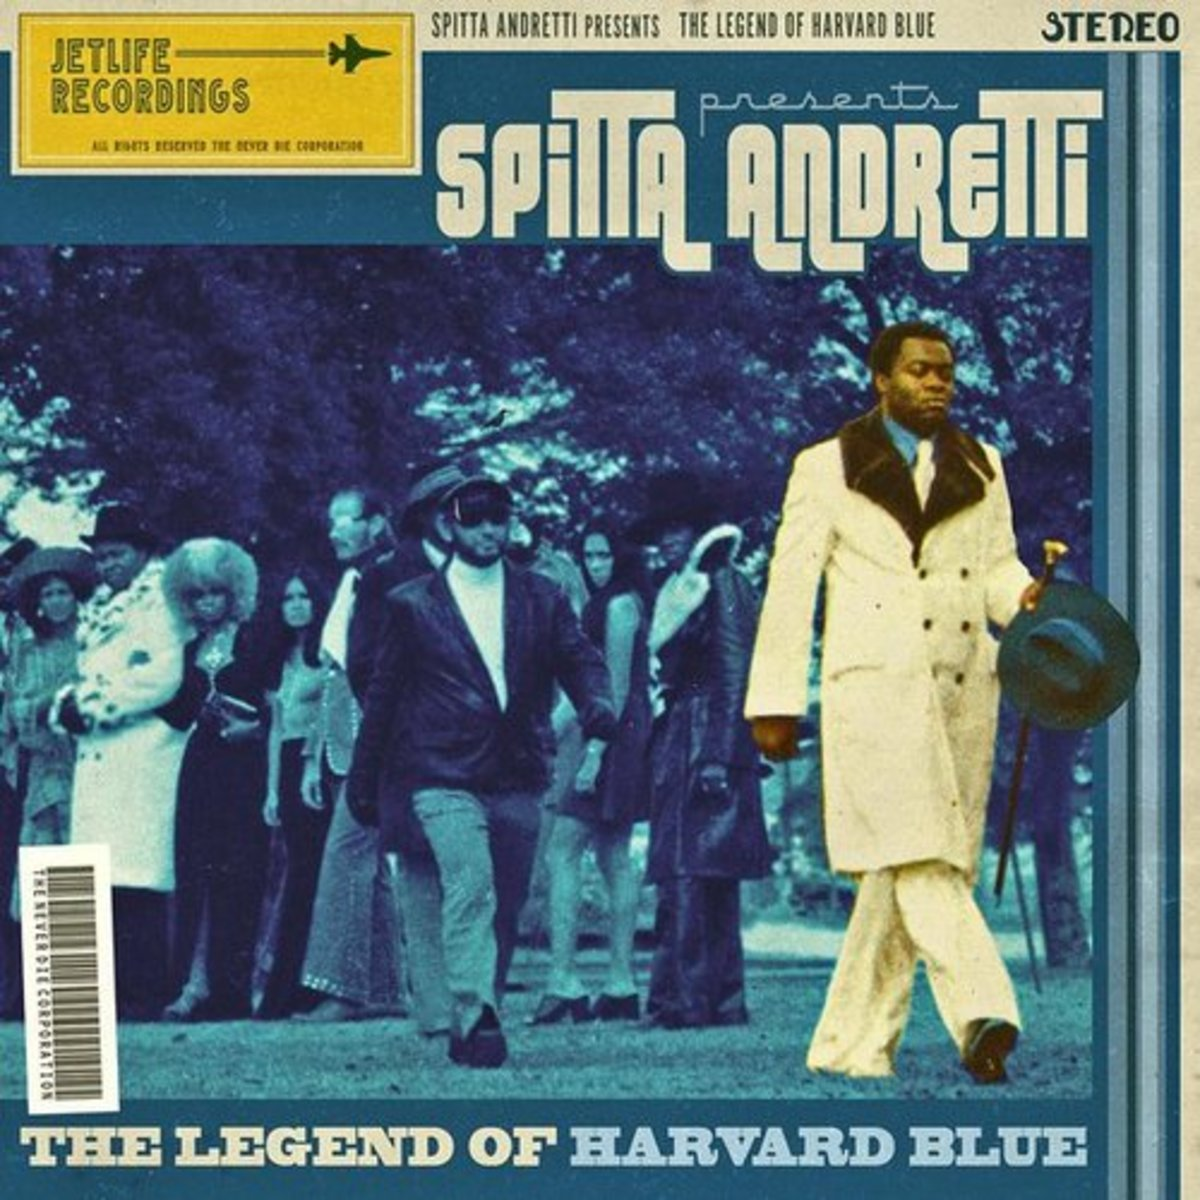 currensy-the-legend-of-harvard-blue.jpg